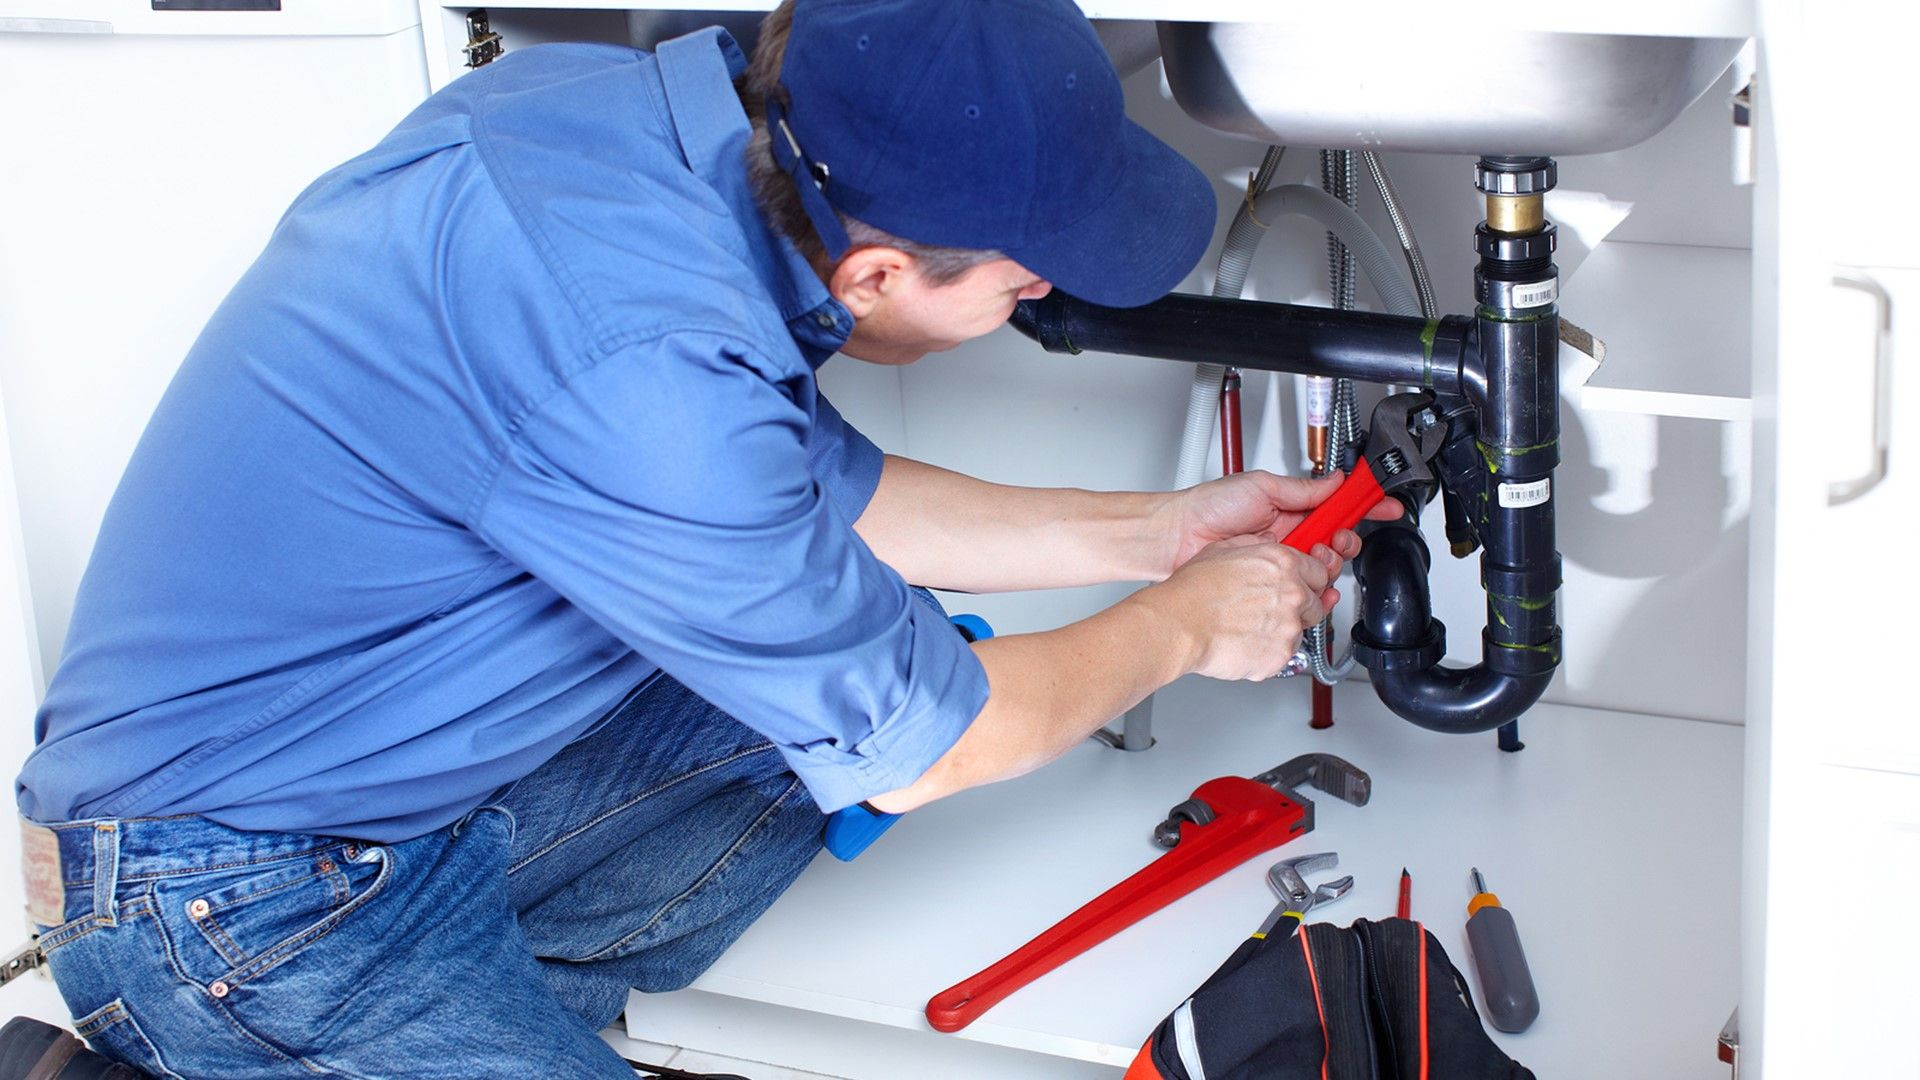 Maintain Your Property In Good Condition With Efficient Plumbers And Heating Experts